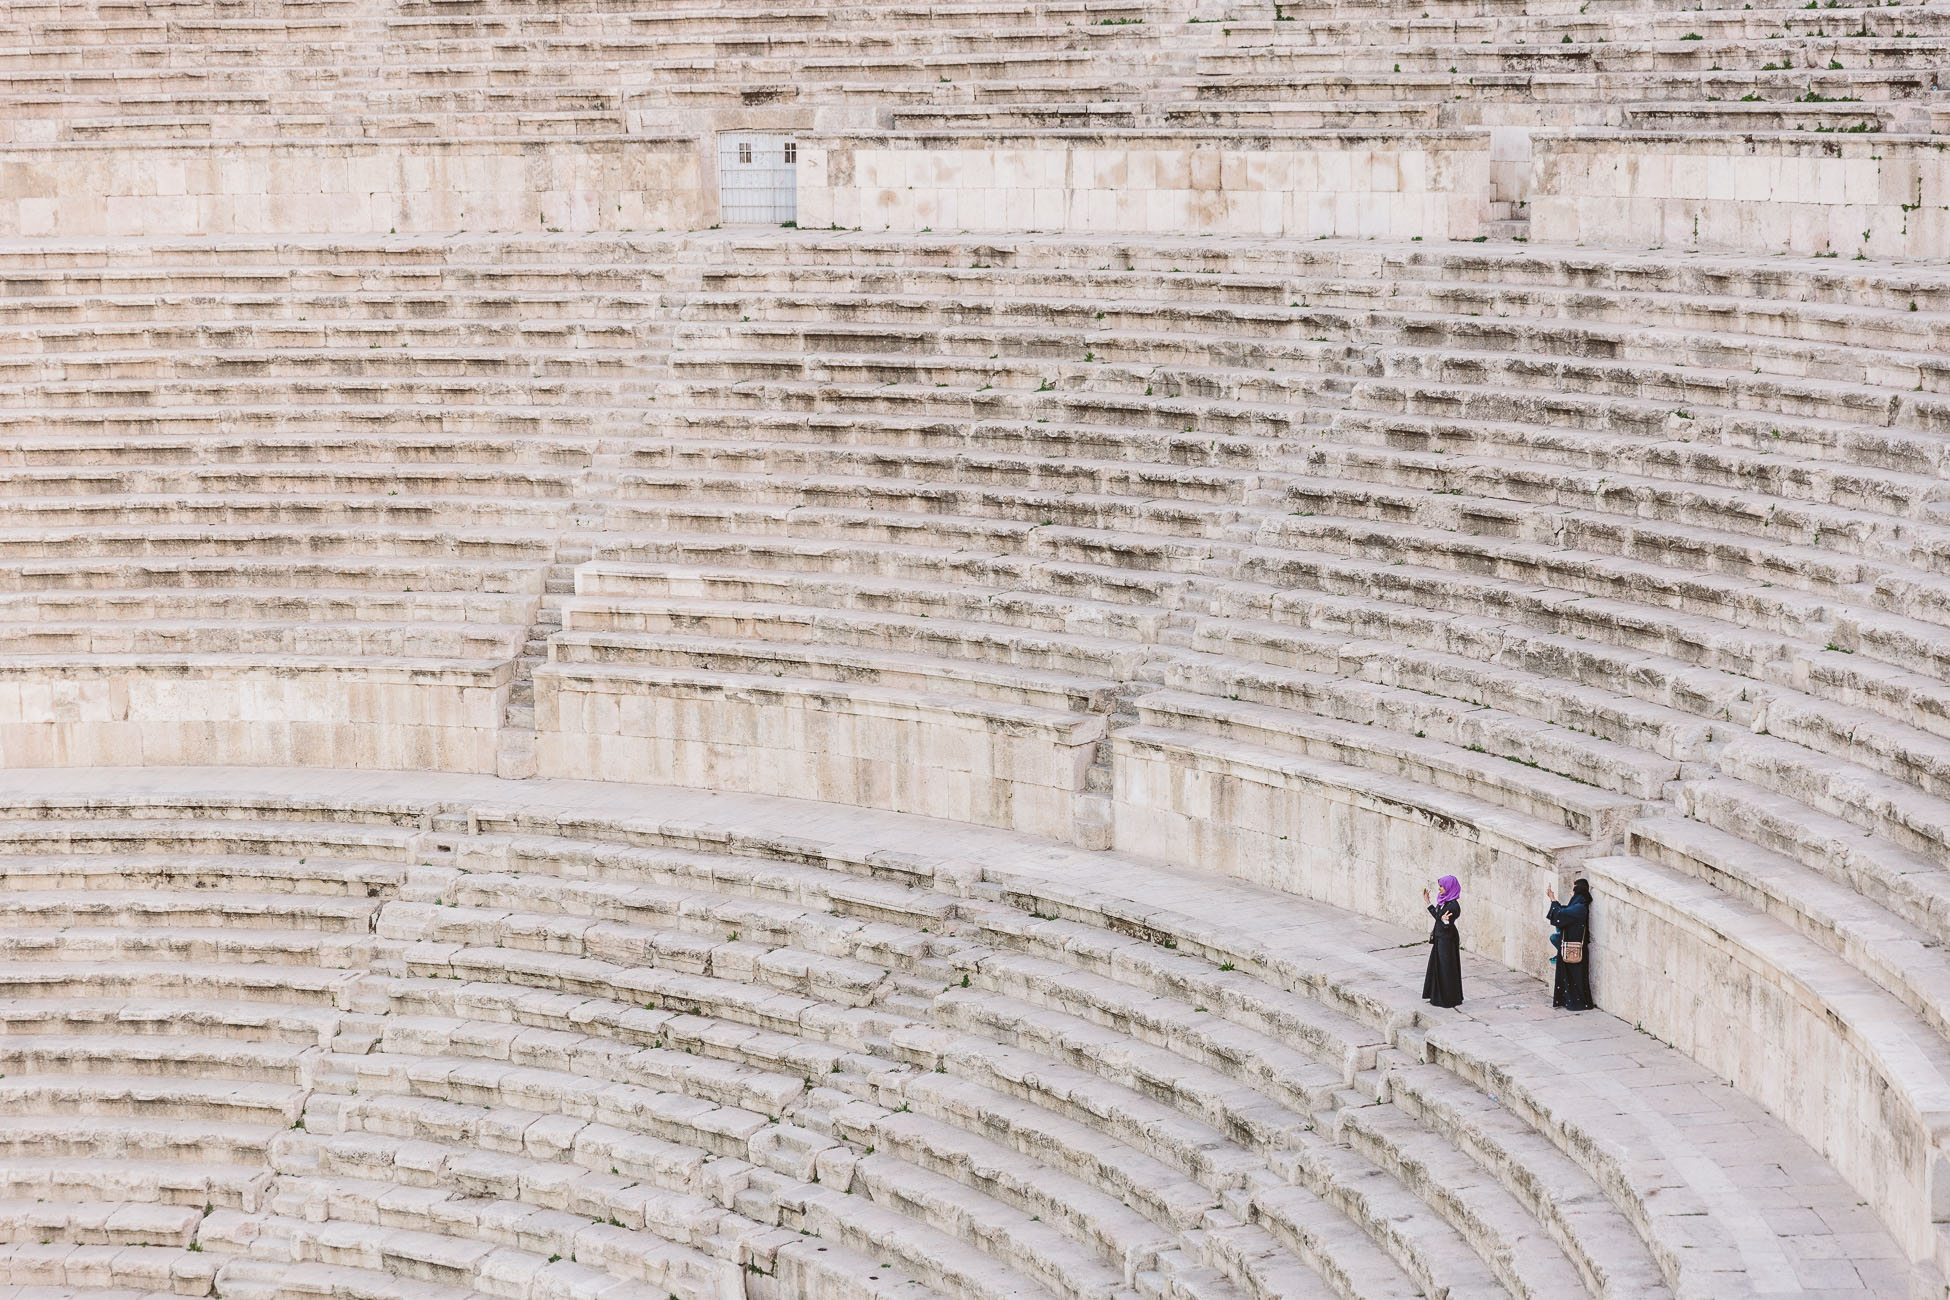 Watch the sunset at the Roman Theatre in Amman during 24 hours in Amman